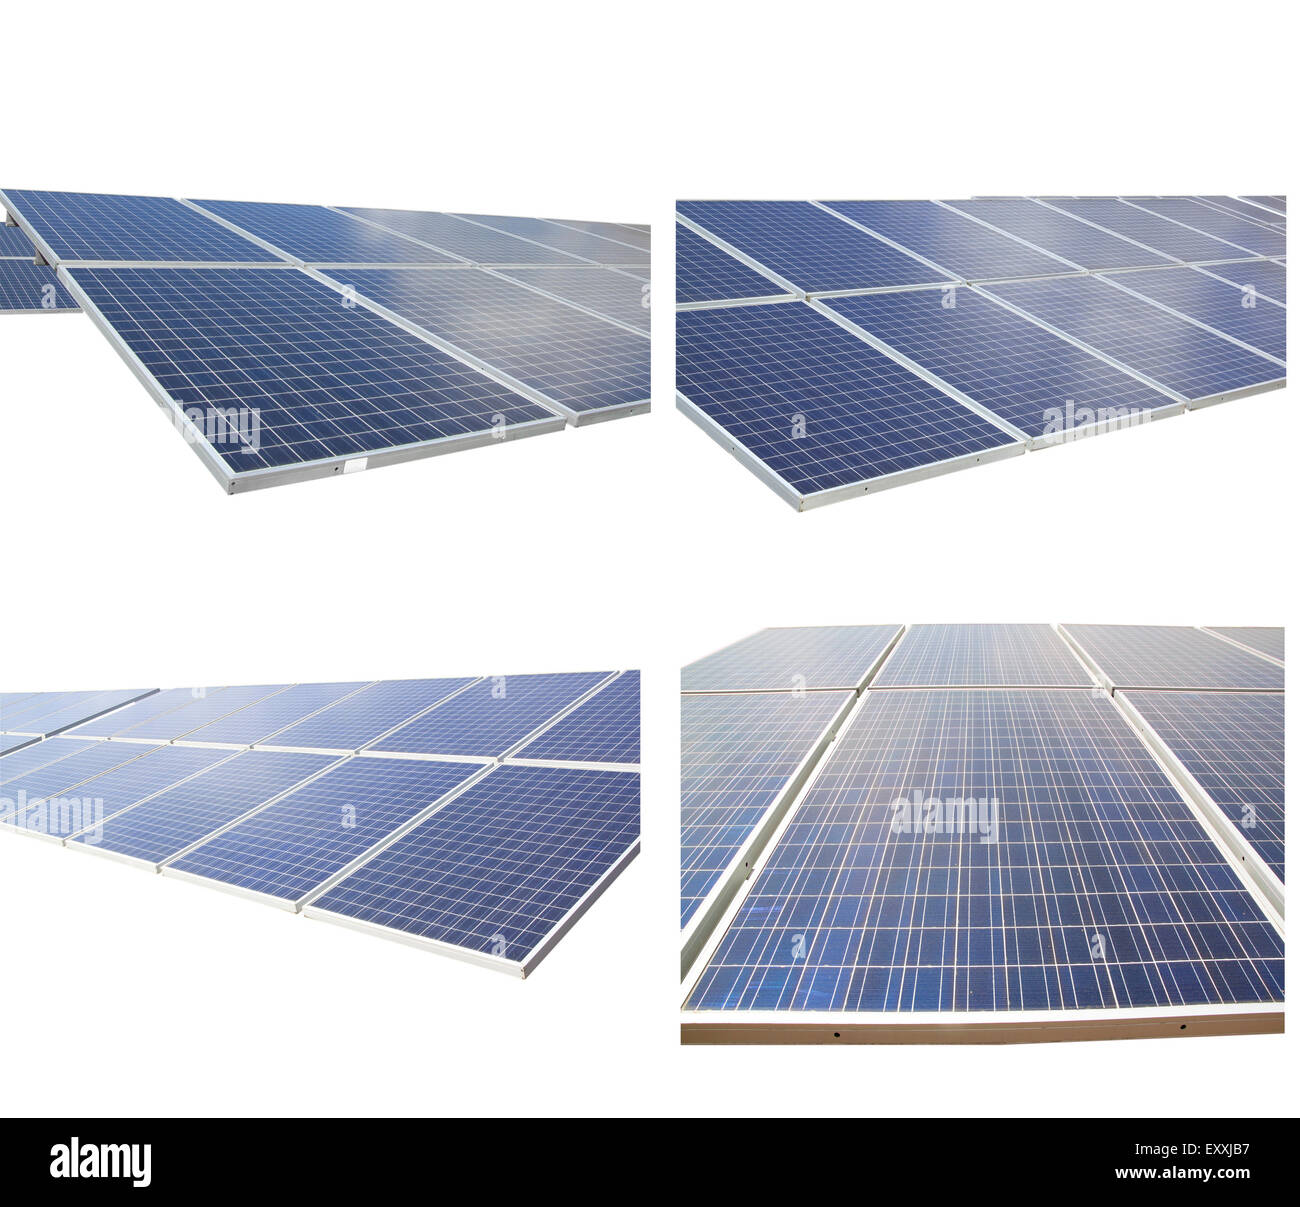 Solar energy panels isolated on a white background. - Stock Image